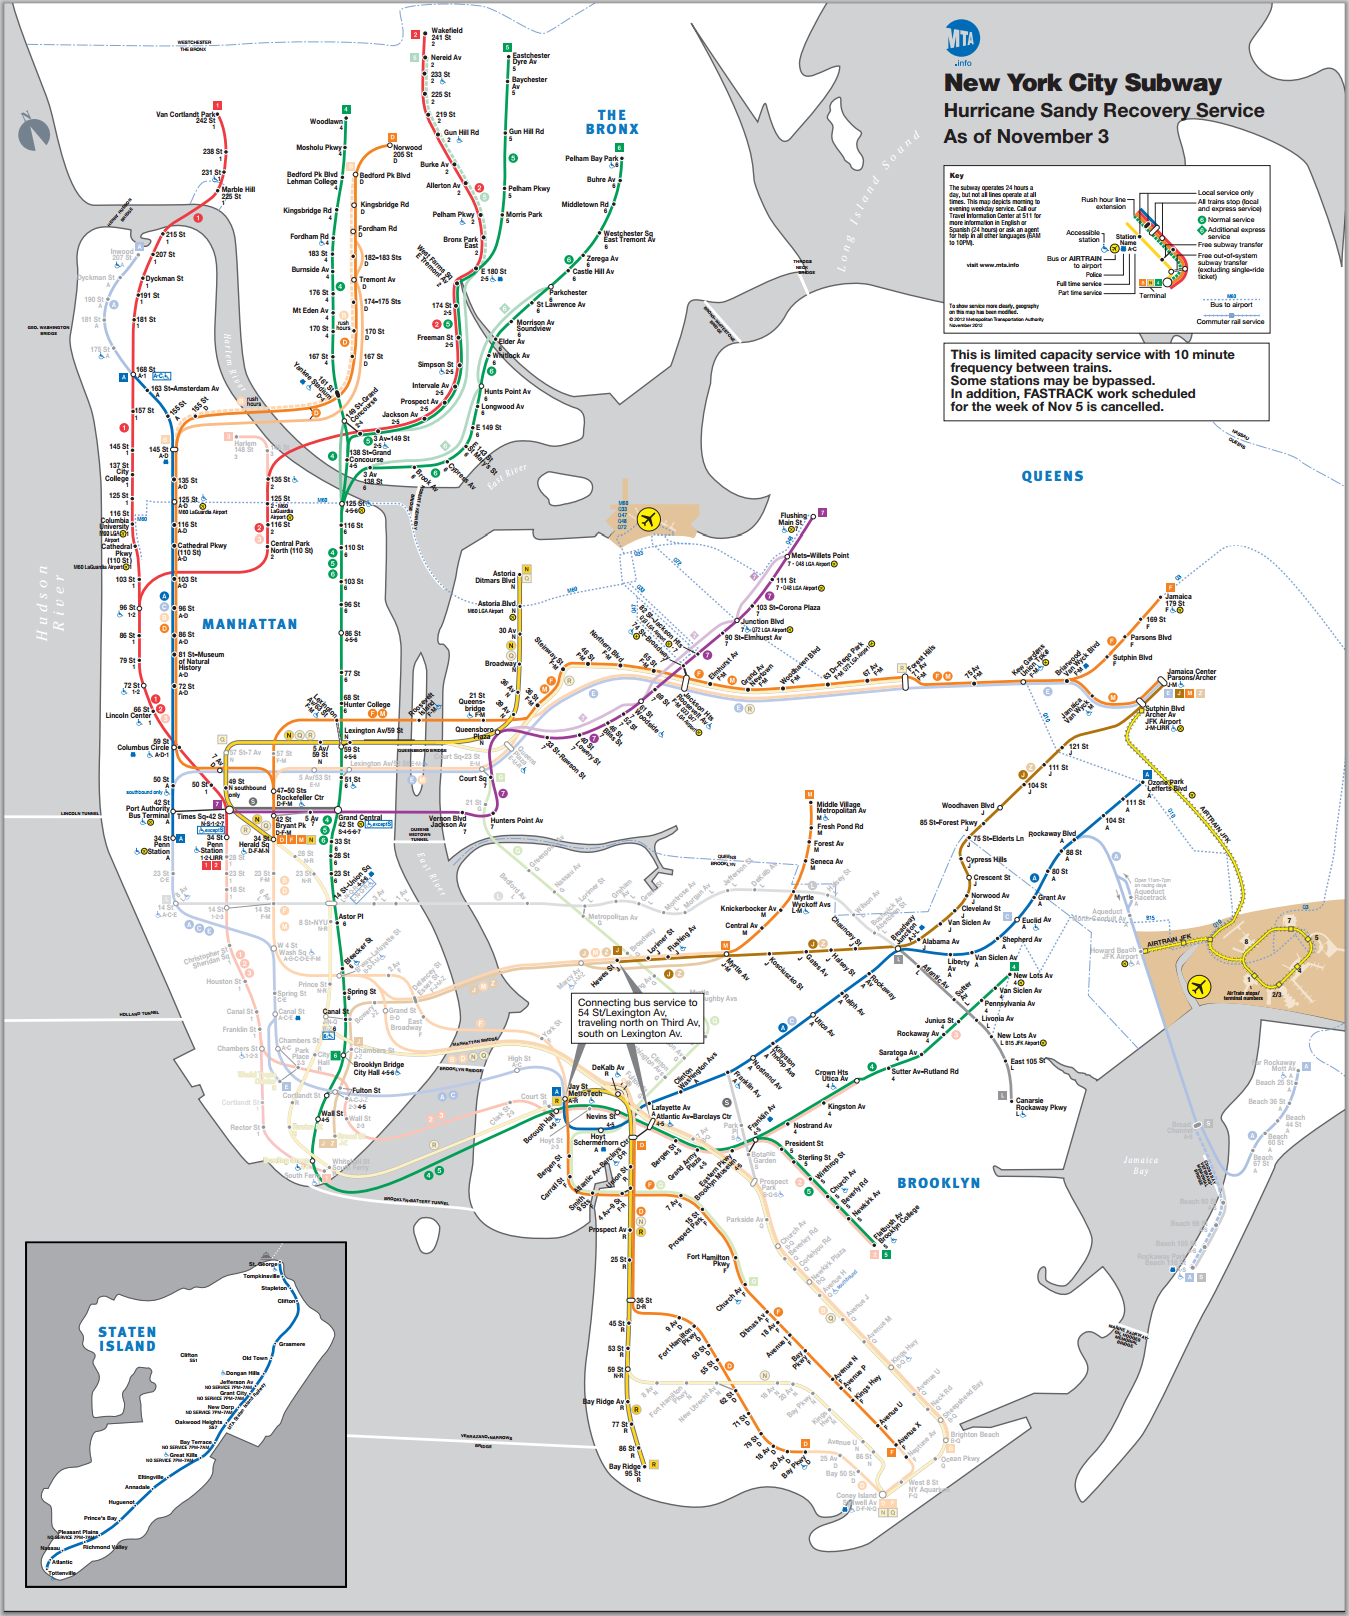 Updated NYC Subway Map November 3